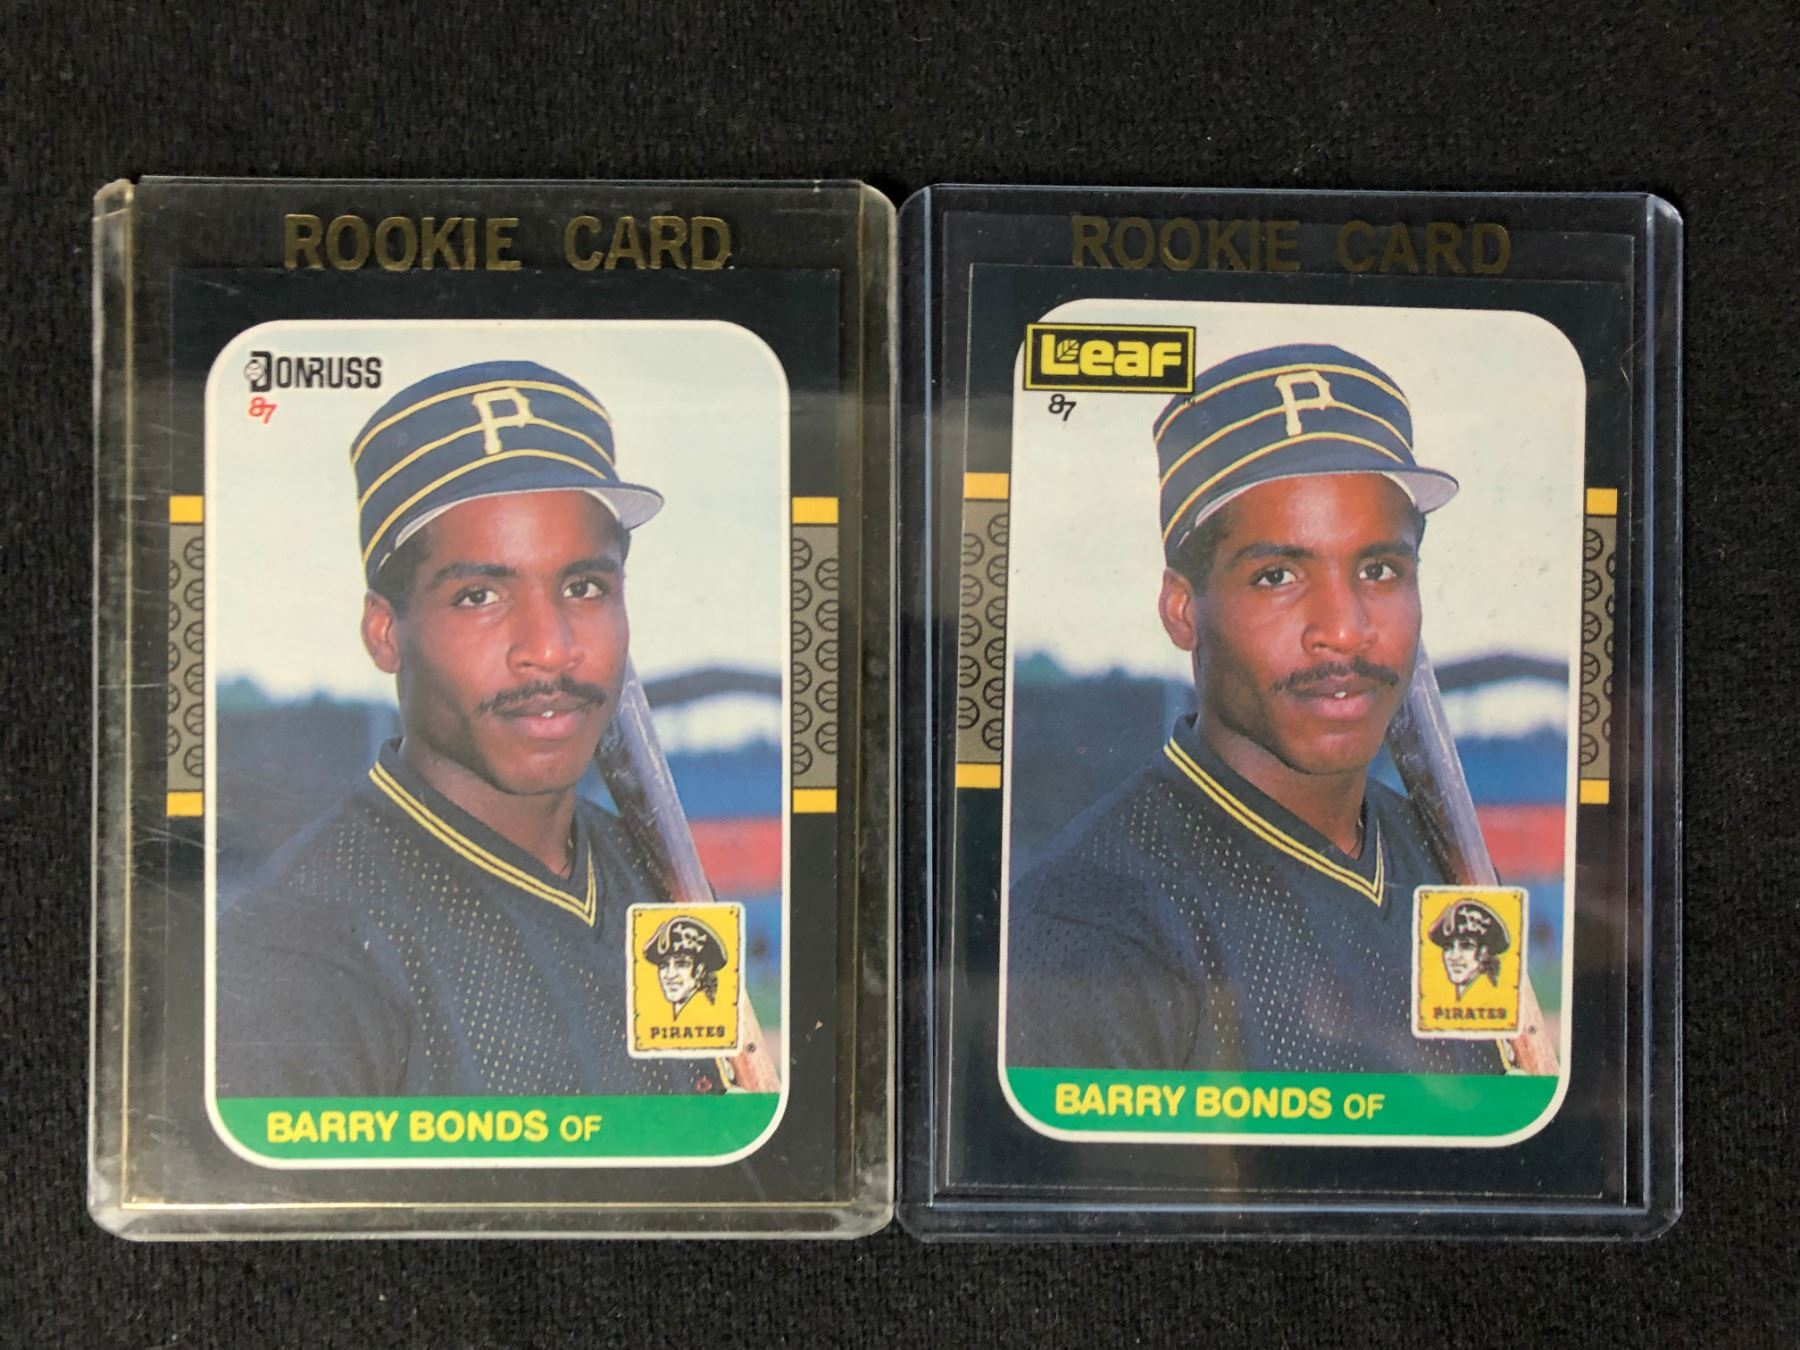 1987 Barry Bonds Baseball Rookie Card Lot Donruss 361 Leaf 219